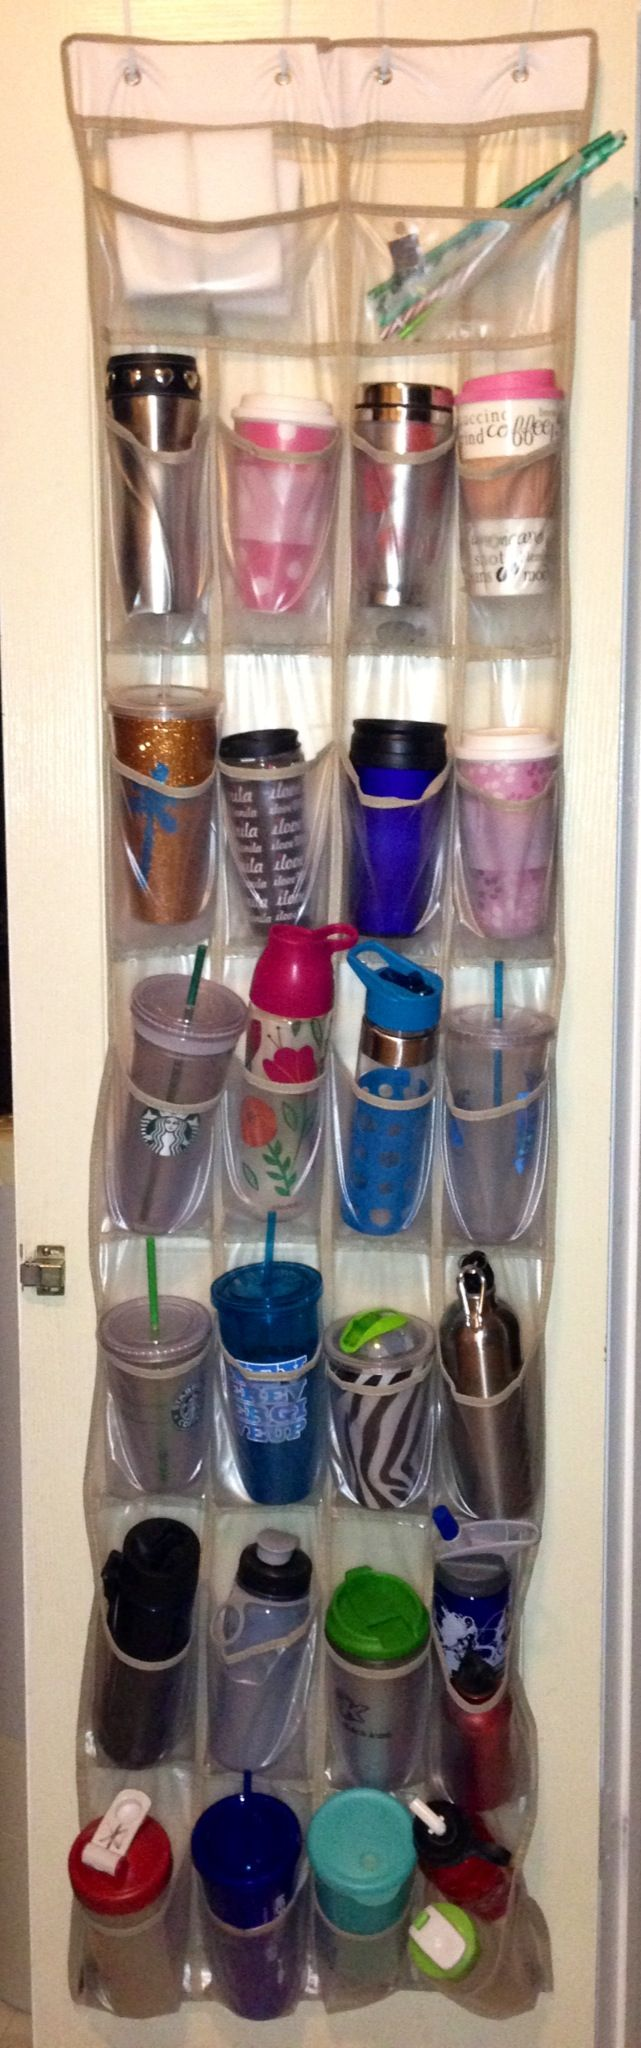 Stroke of genius! Hanging shoe rack on pantry door to store coffee tumblers and reusable water bottles! Clears out the shelves and cabinets. Instant space!